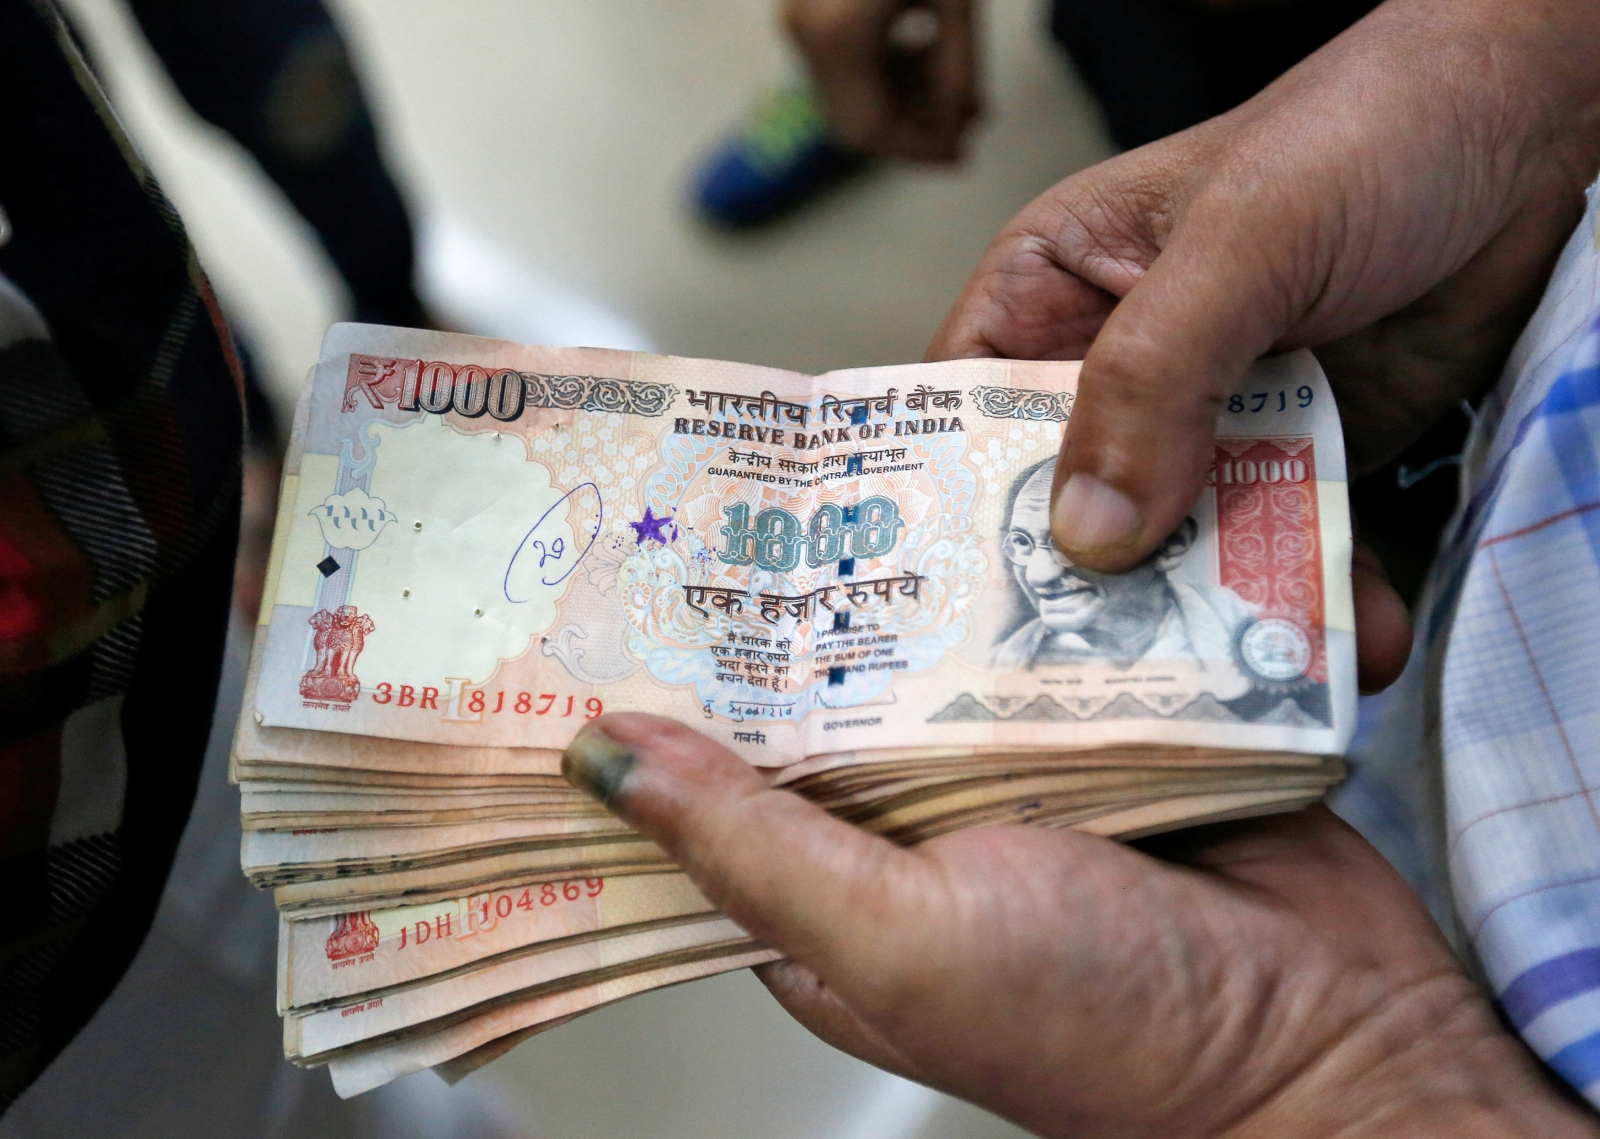 India demonetisation high value currency notes